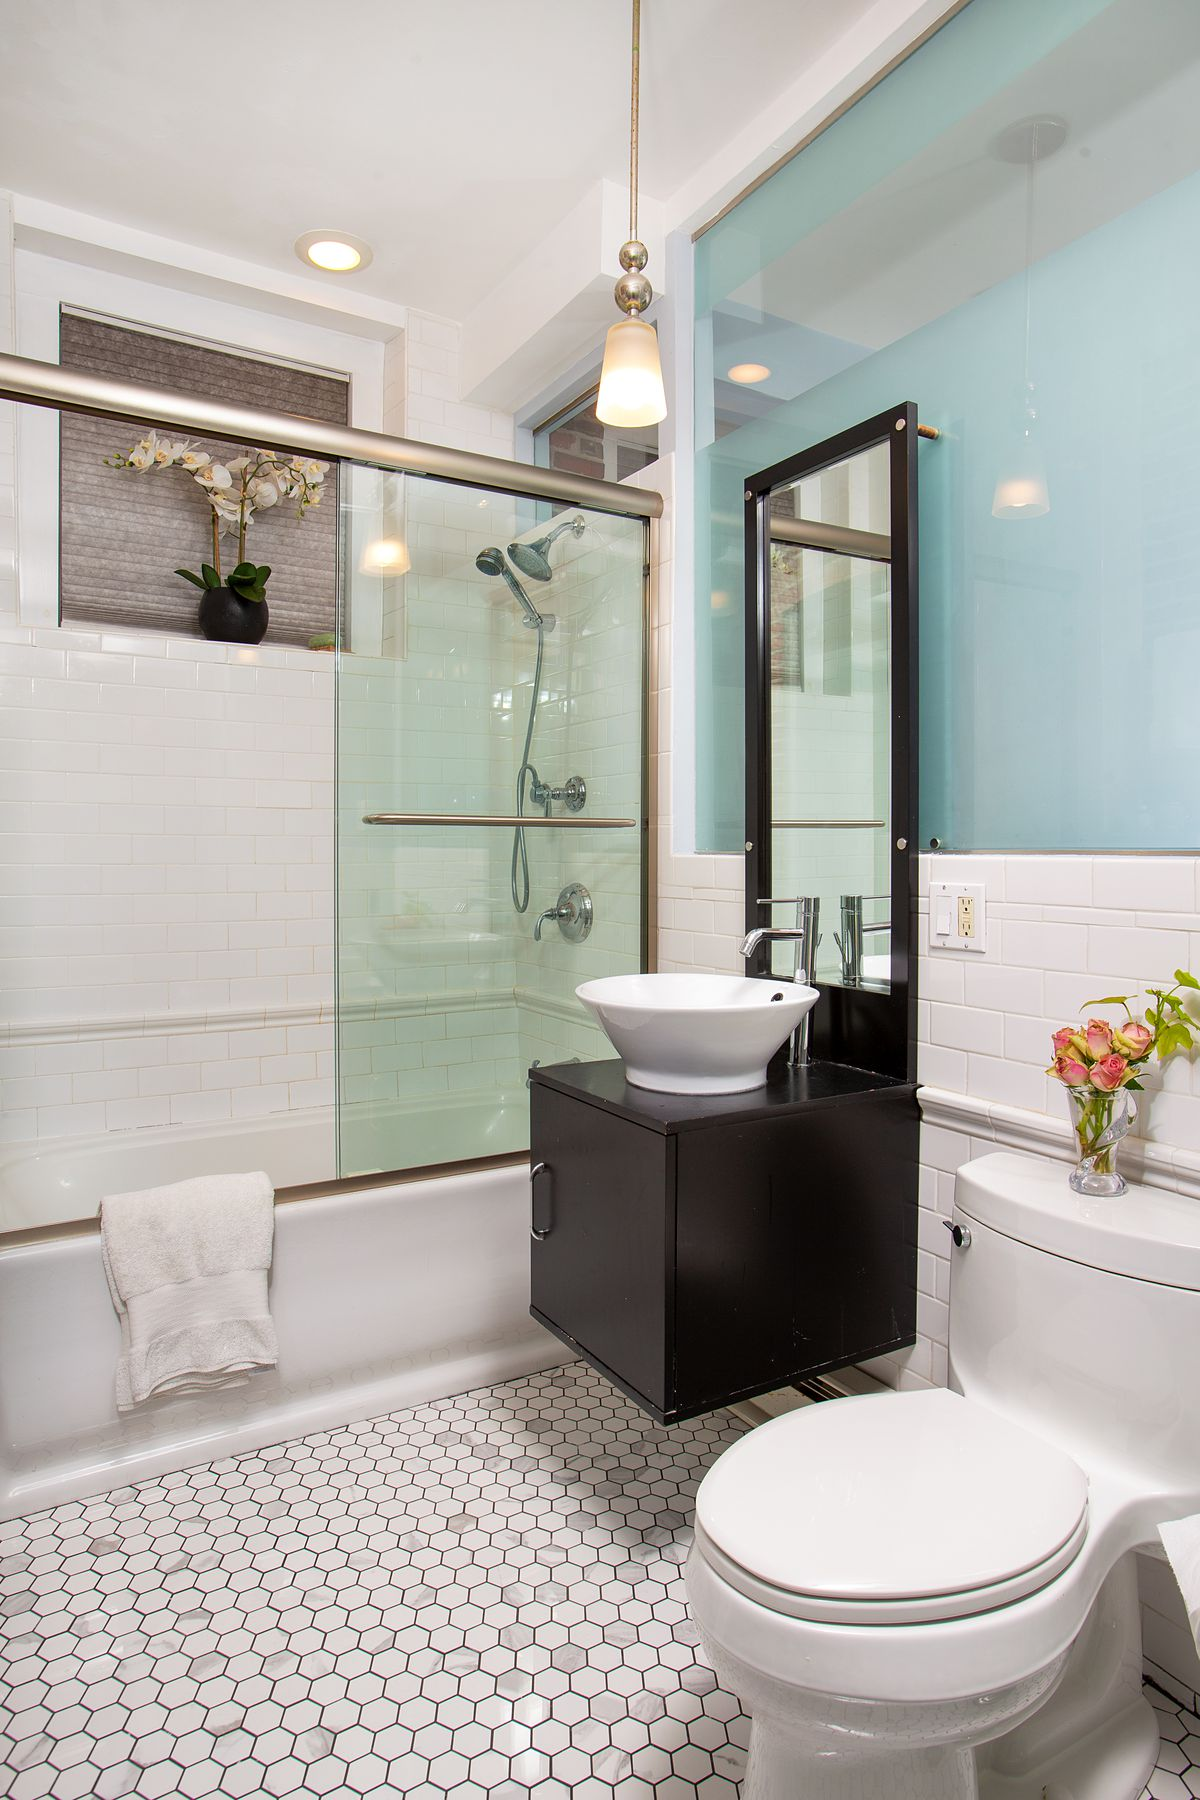 A bathroom with a basin sink and a shower behind glass doors.